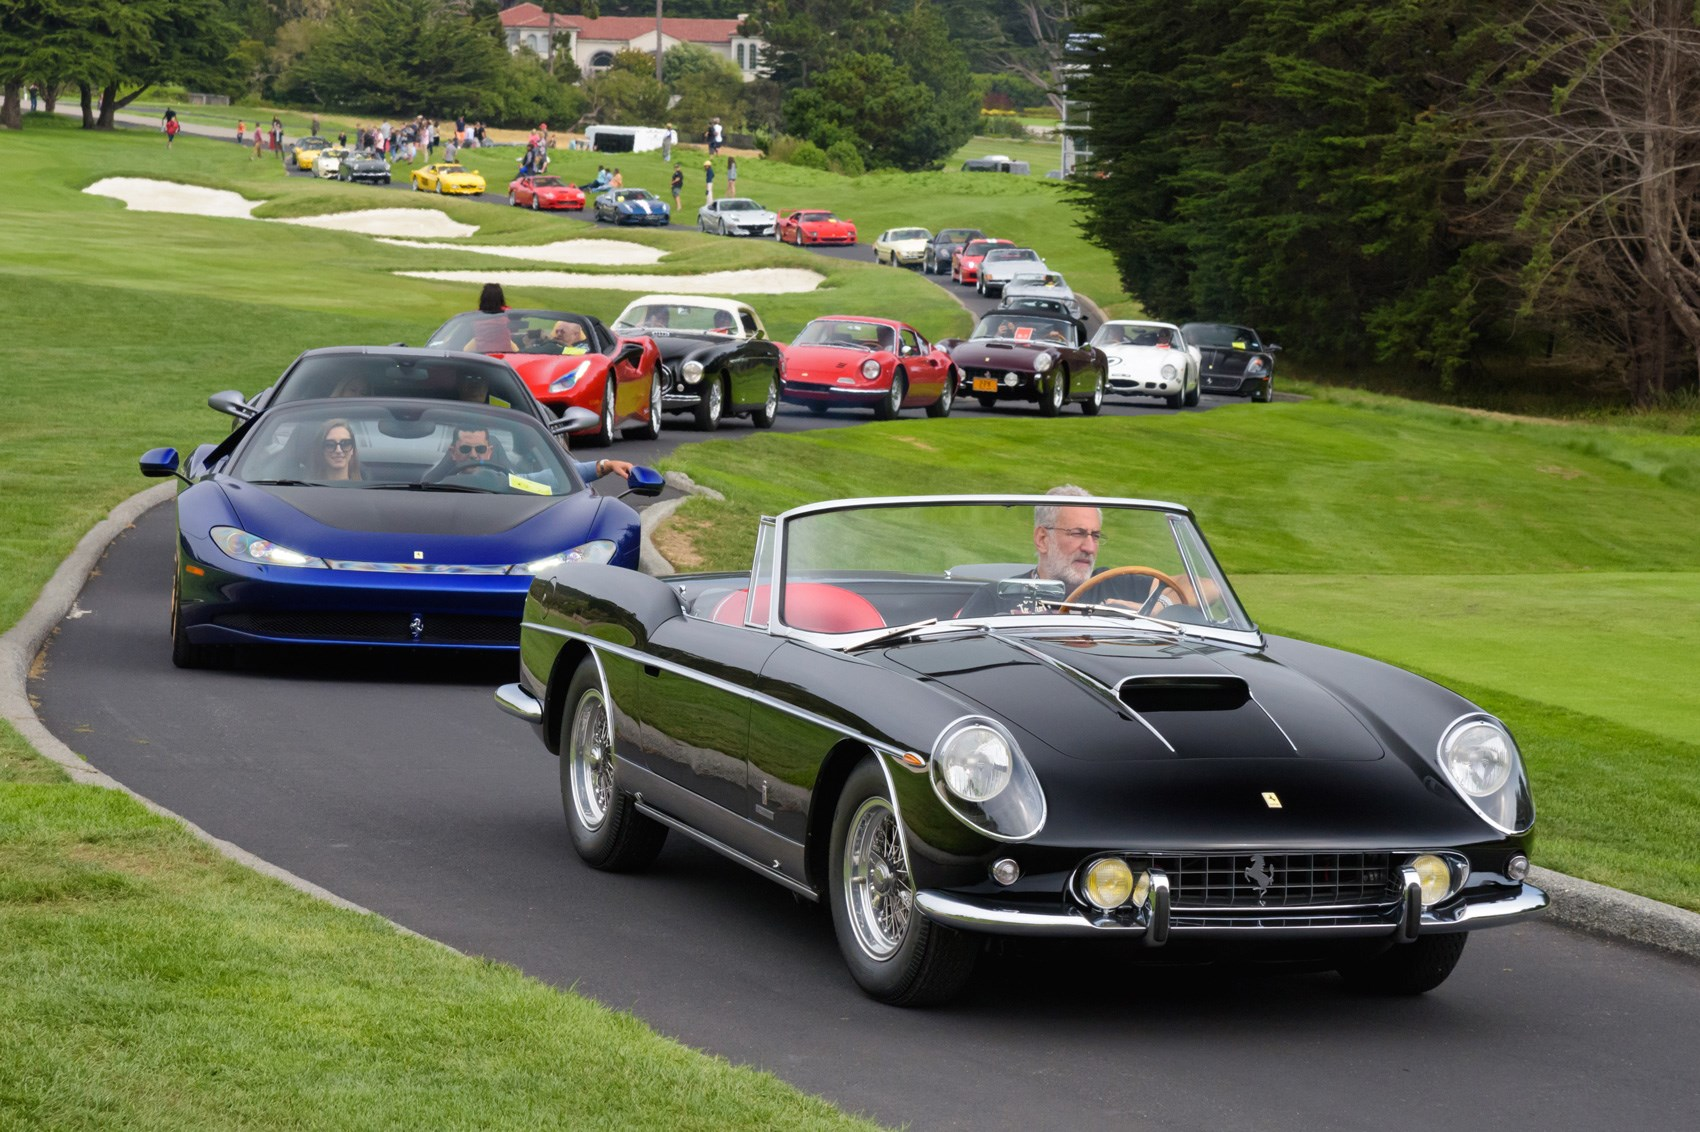 Gallery Pebble Beach Concours DElegance In Pictures CAR - Pebble beach car show ticket prices